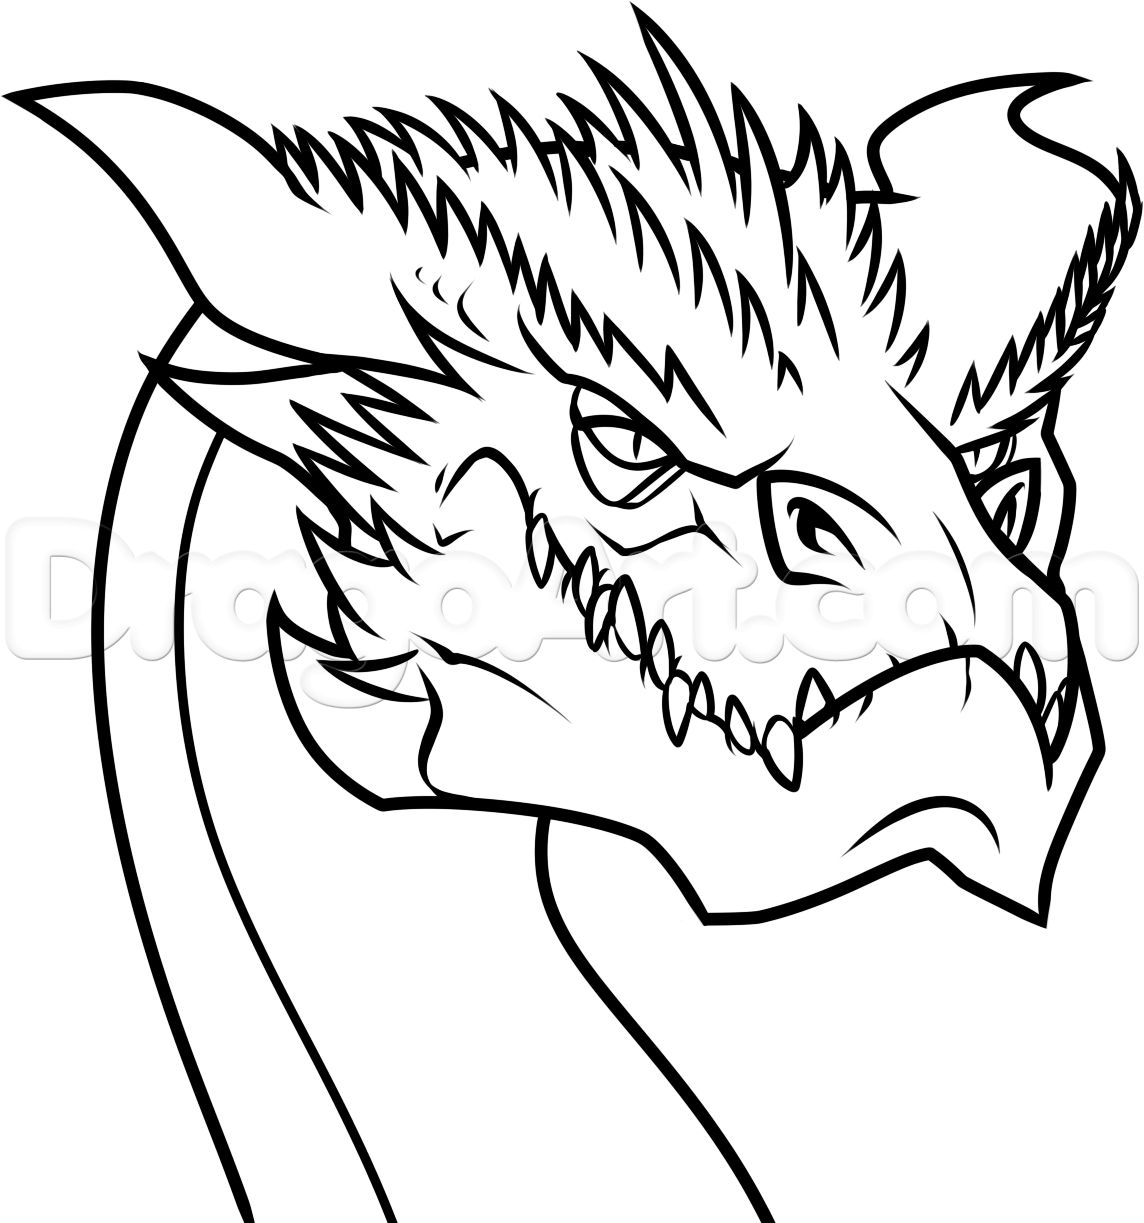 How to Draw Smaug Easy Step by Step Dragons Draw a Dragon